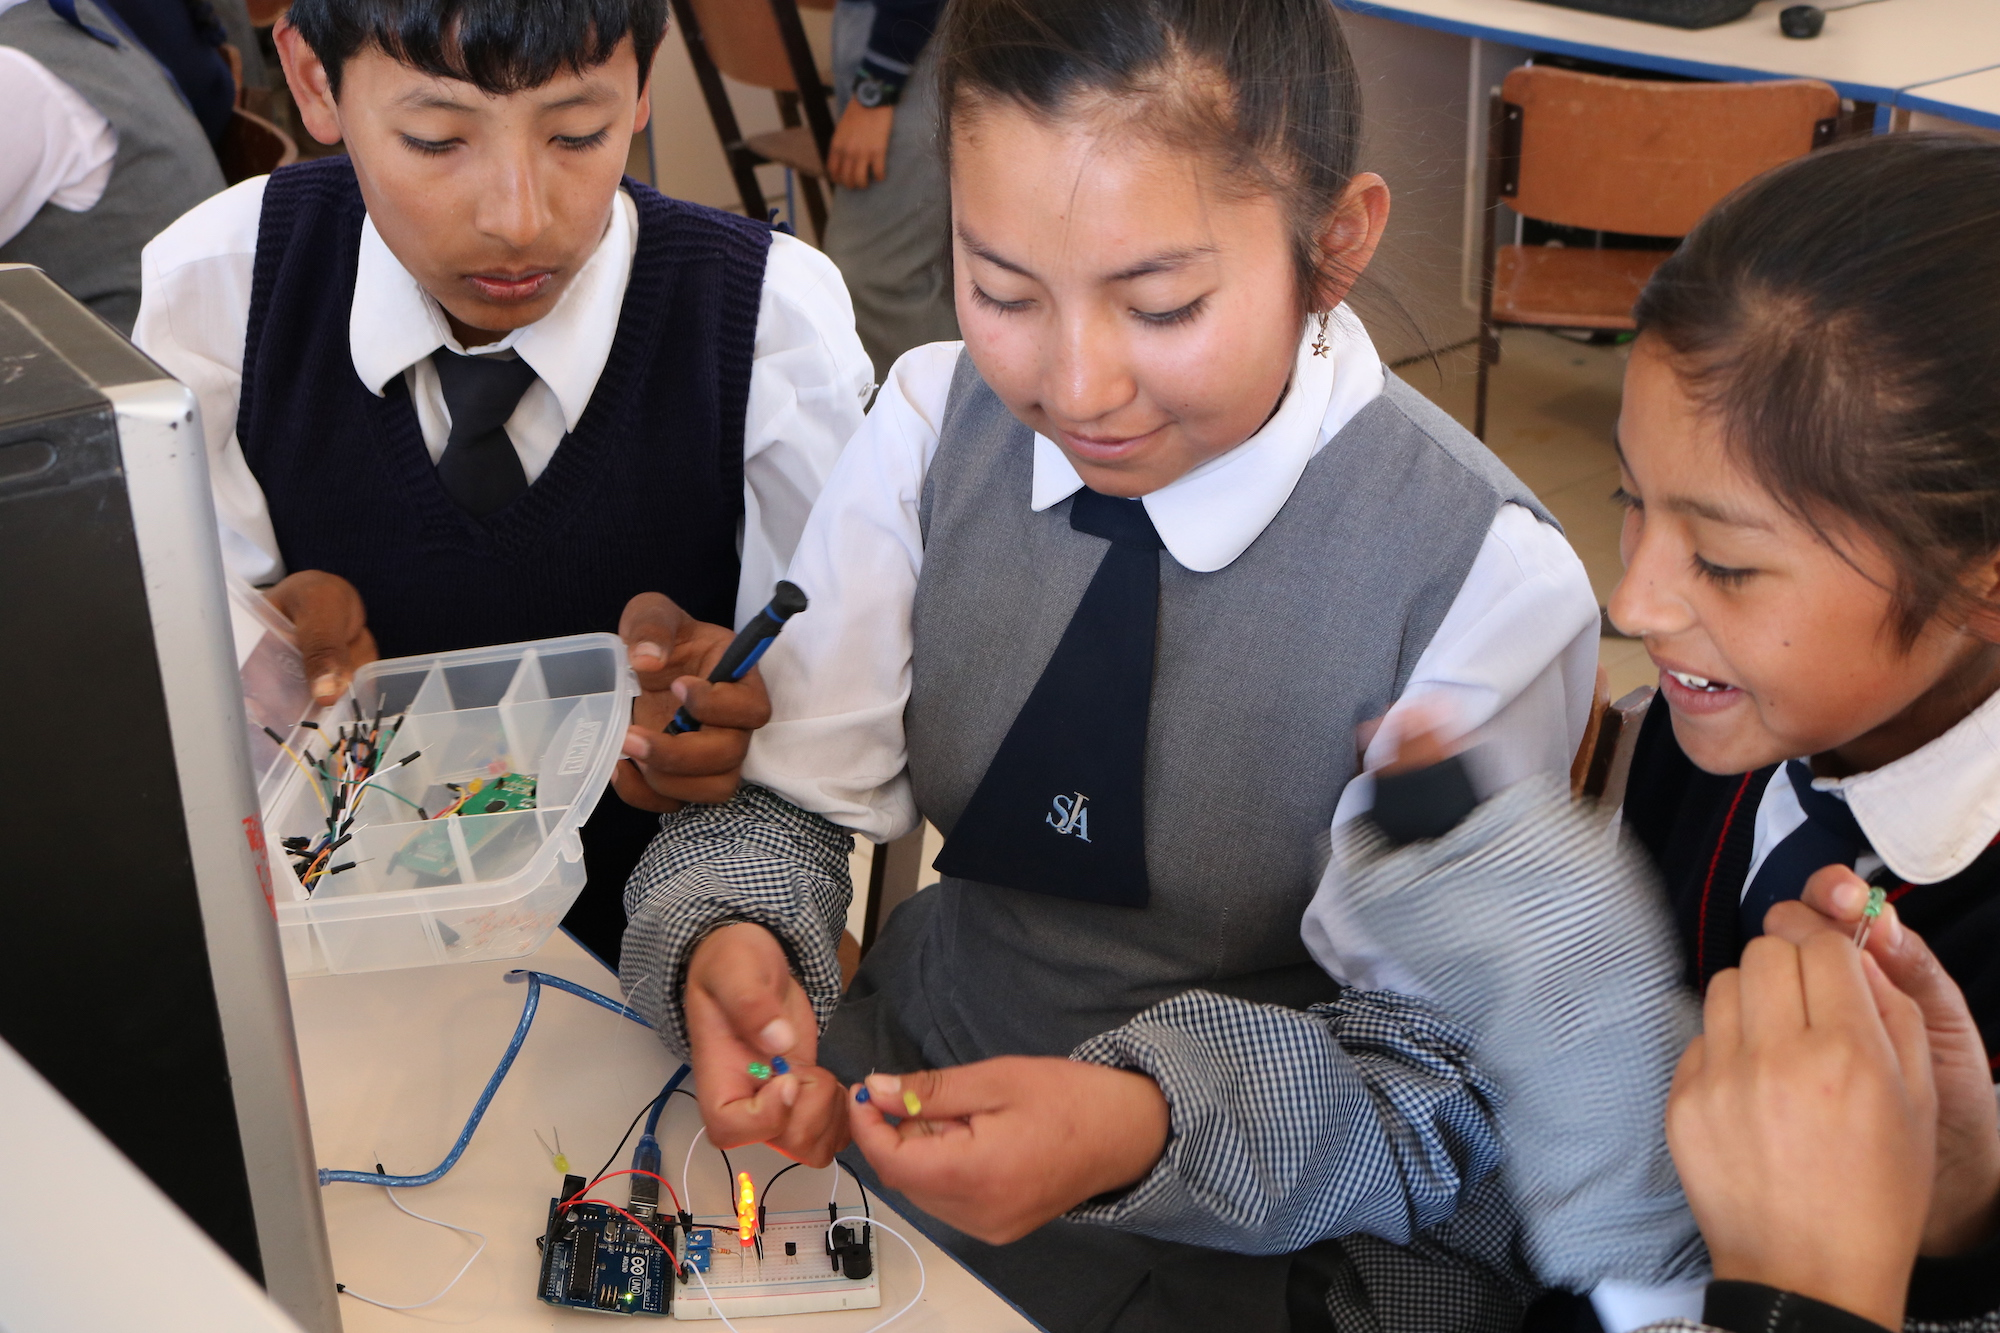 Students in San Juan Apostol school in Arequipa, Peru, are excited because their LED circuit on Arduino worked.